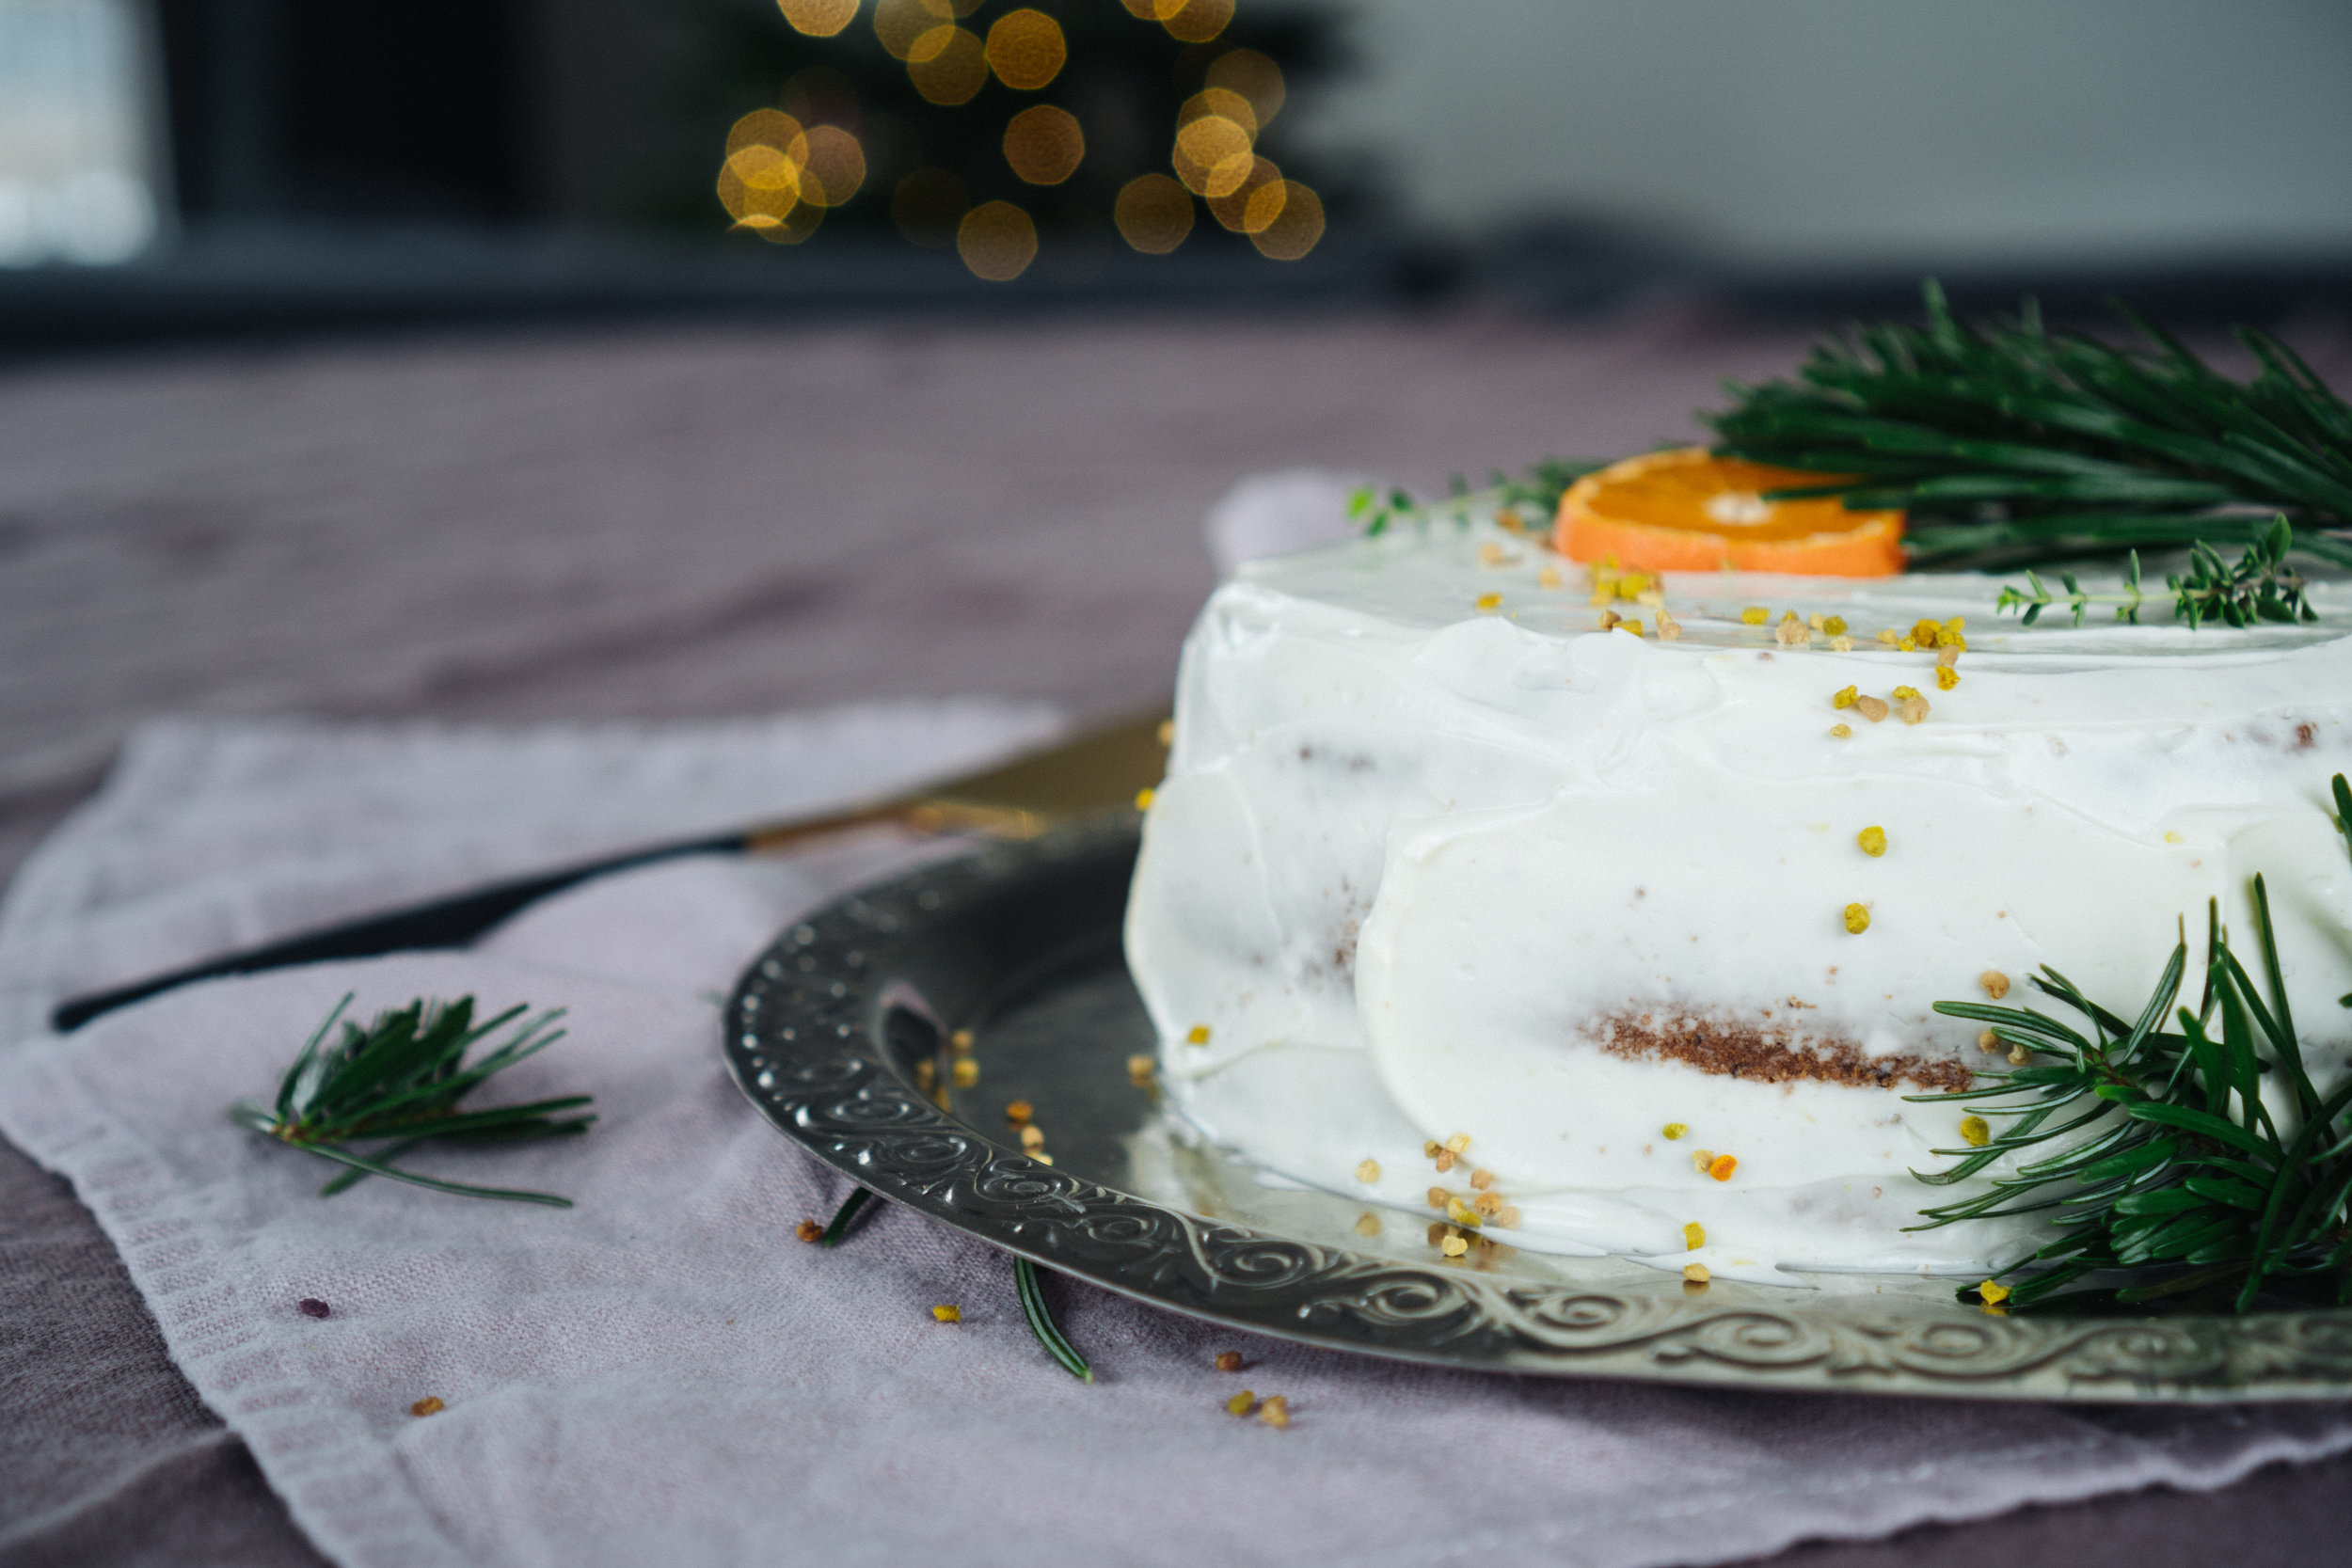 Spiced_Orange_Cake_with_Cream_cheese_Frosting-2.jpg